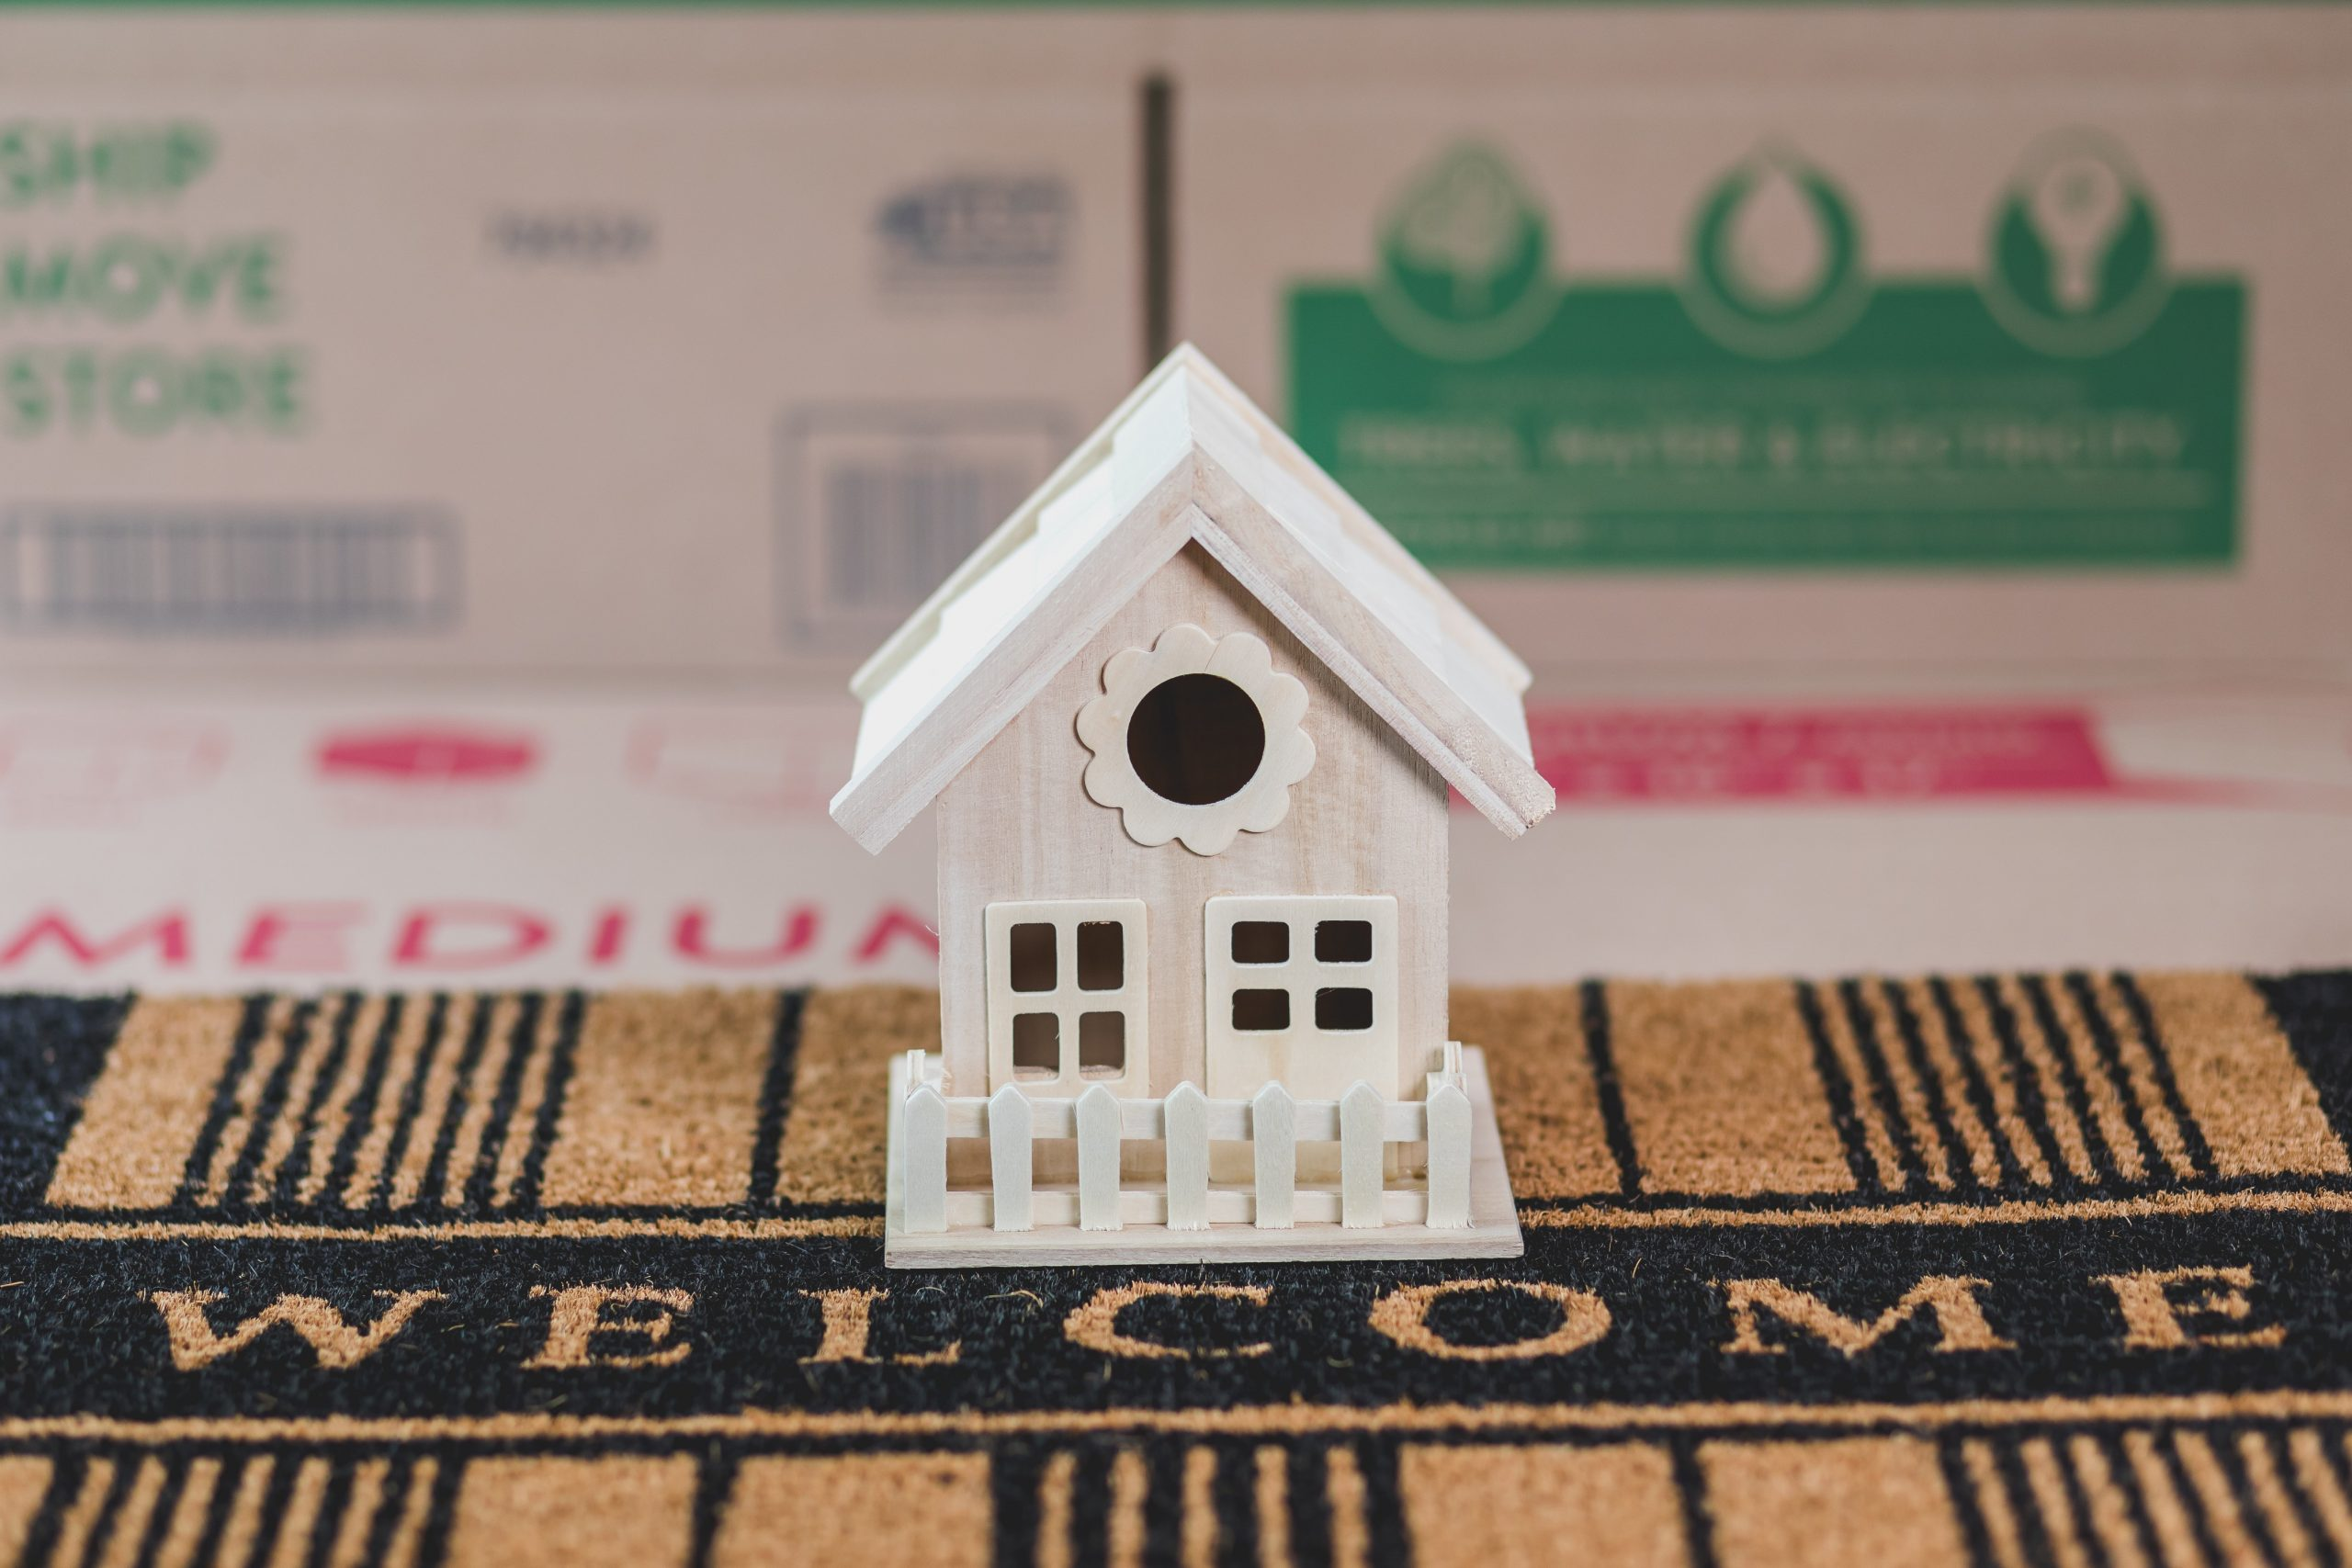 A model of a house positioned on a doormat.